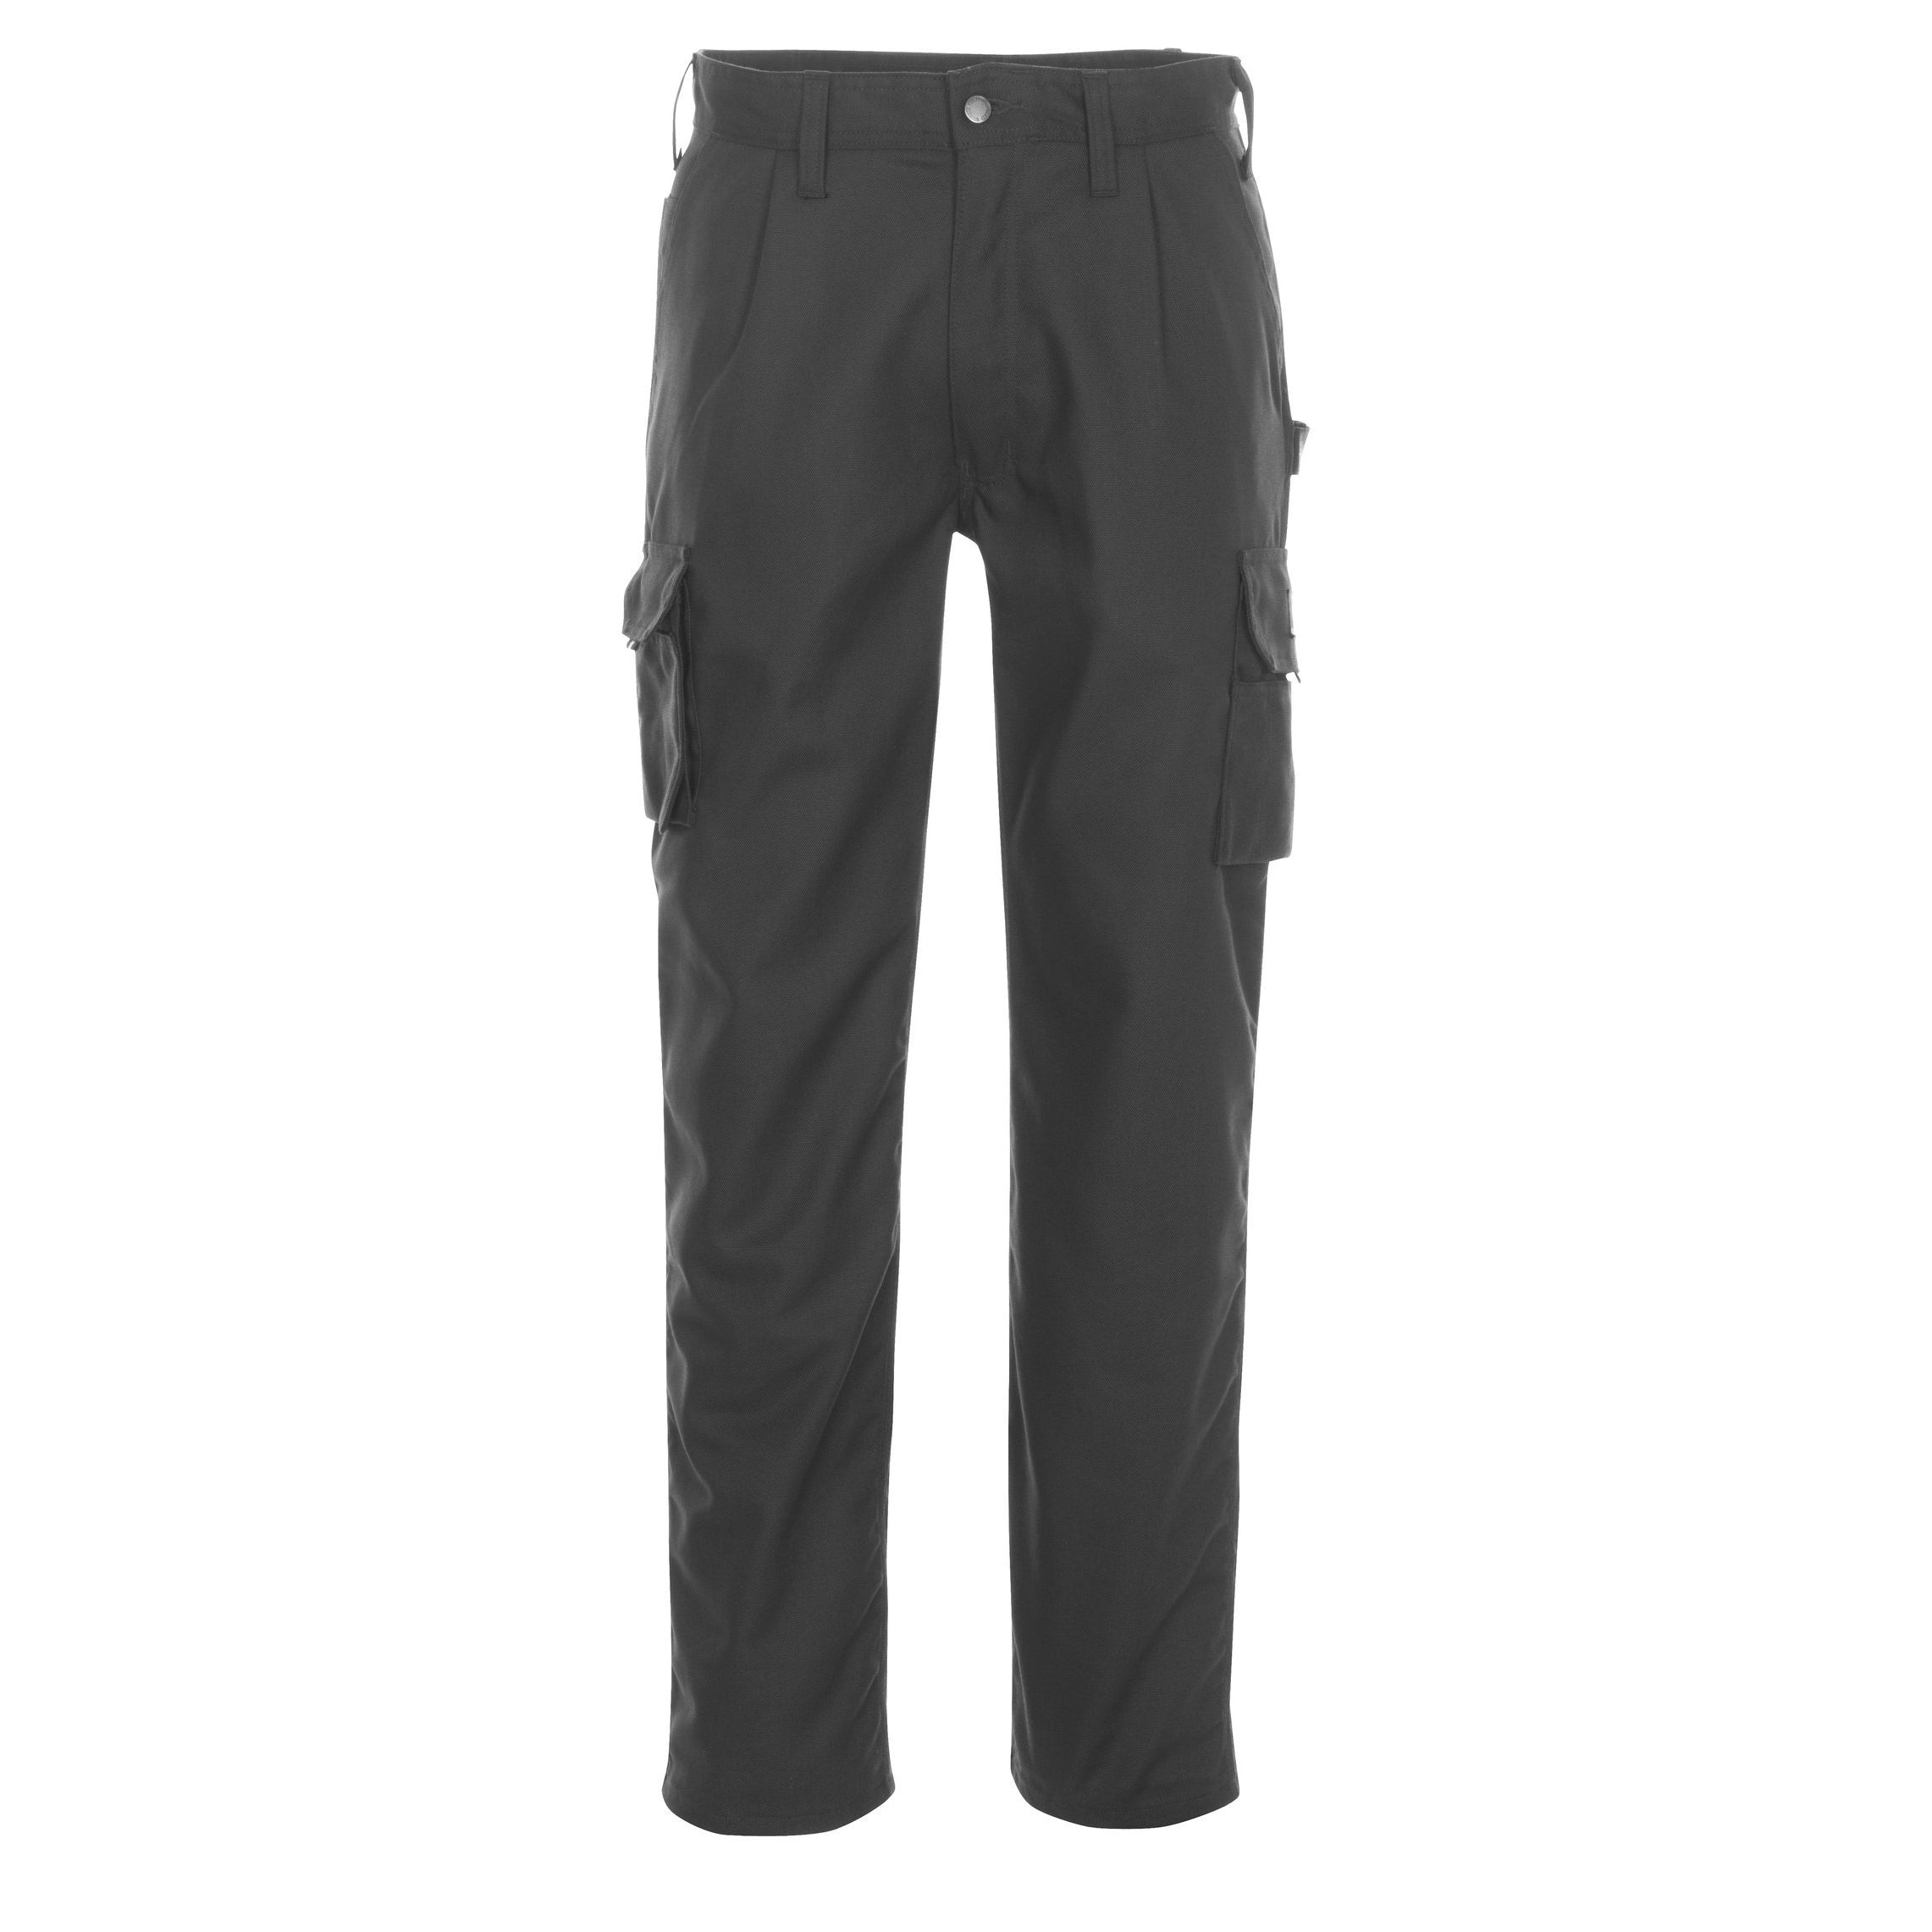 Mascot Toledo Hardwear Trousers With Thigh Pockets